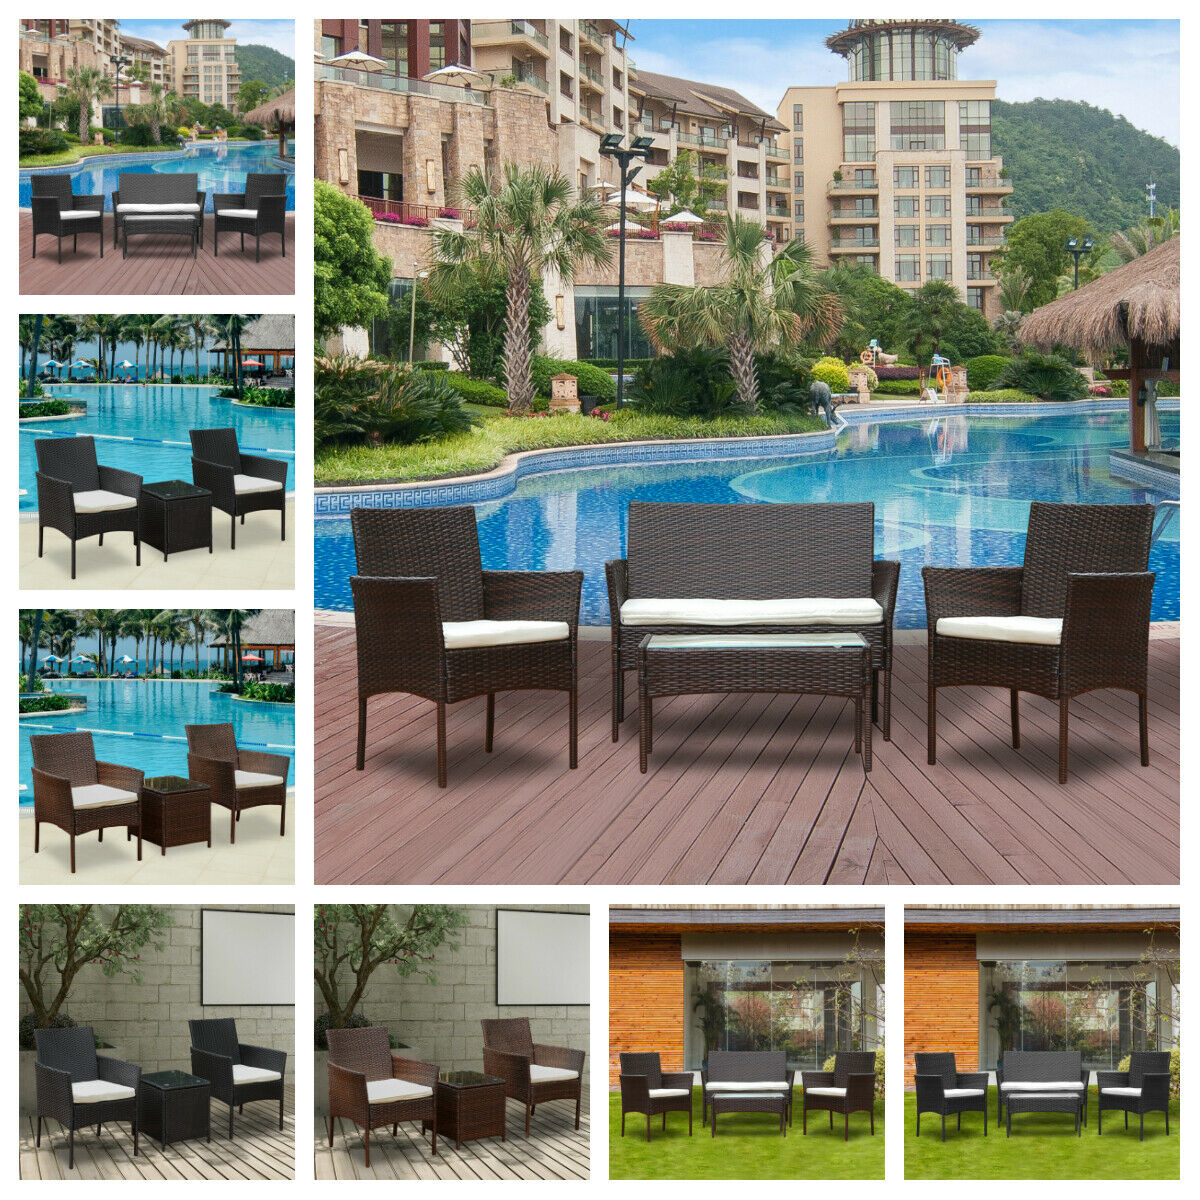 Garden Furniture - 3/4Pcs Rattan Garden Furniture Conservatory Sofa Patio Table Chair Set Outdoor